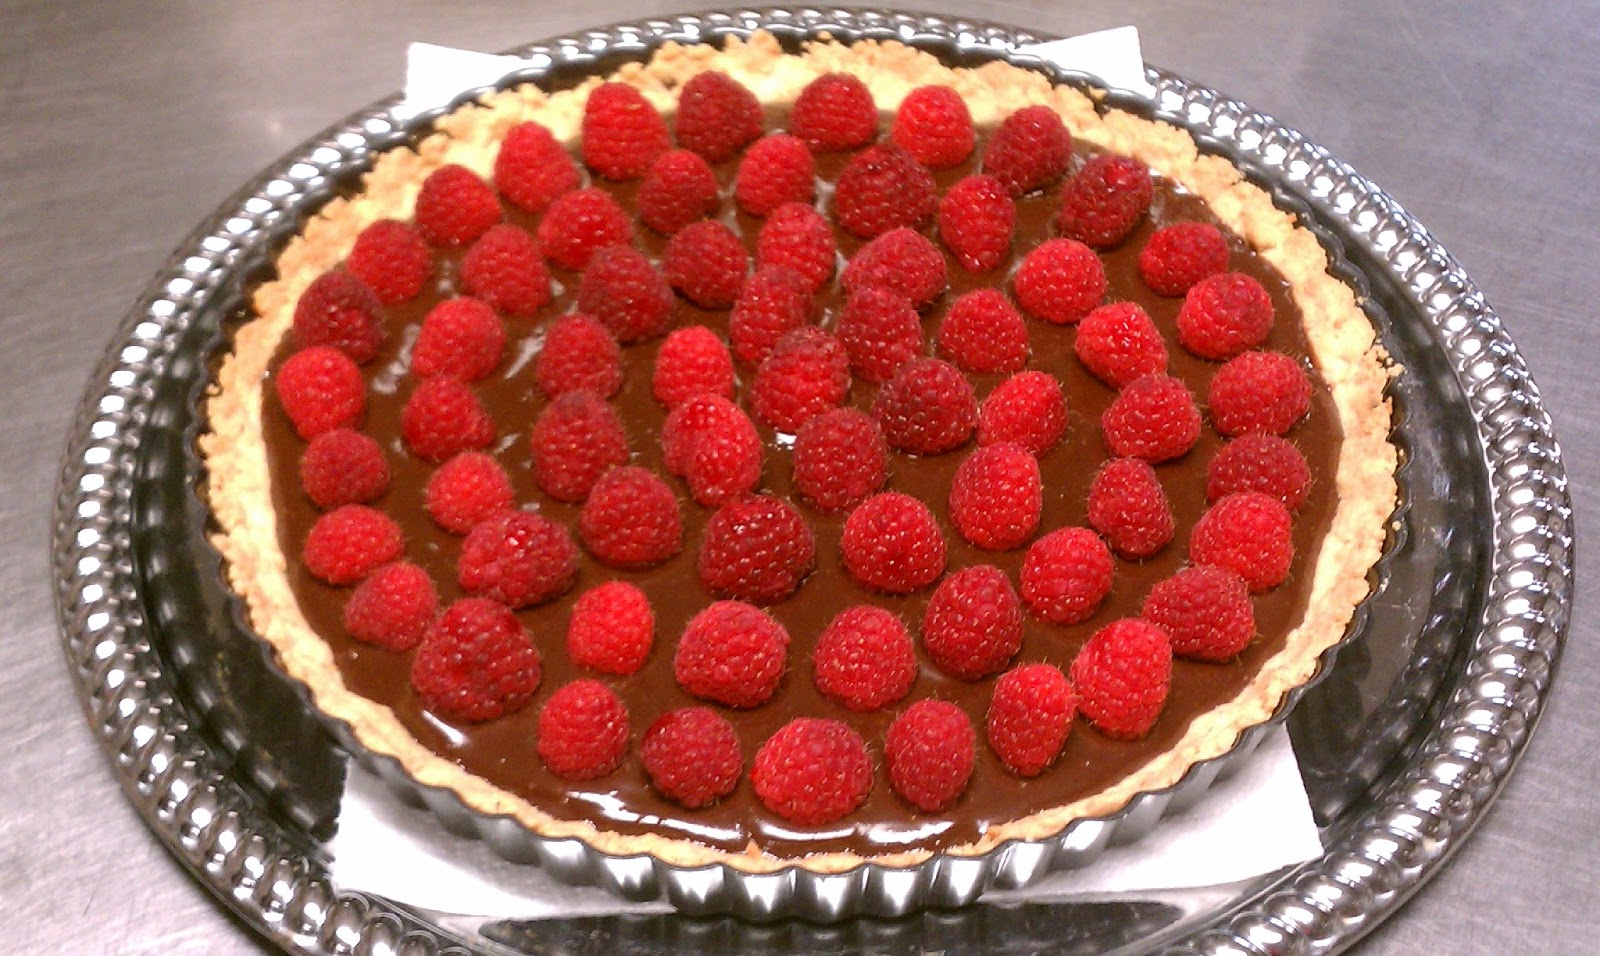 Chocolate Almond Raspberry Tart - St Francis Inn Bed and Breakfast